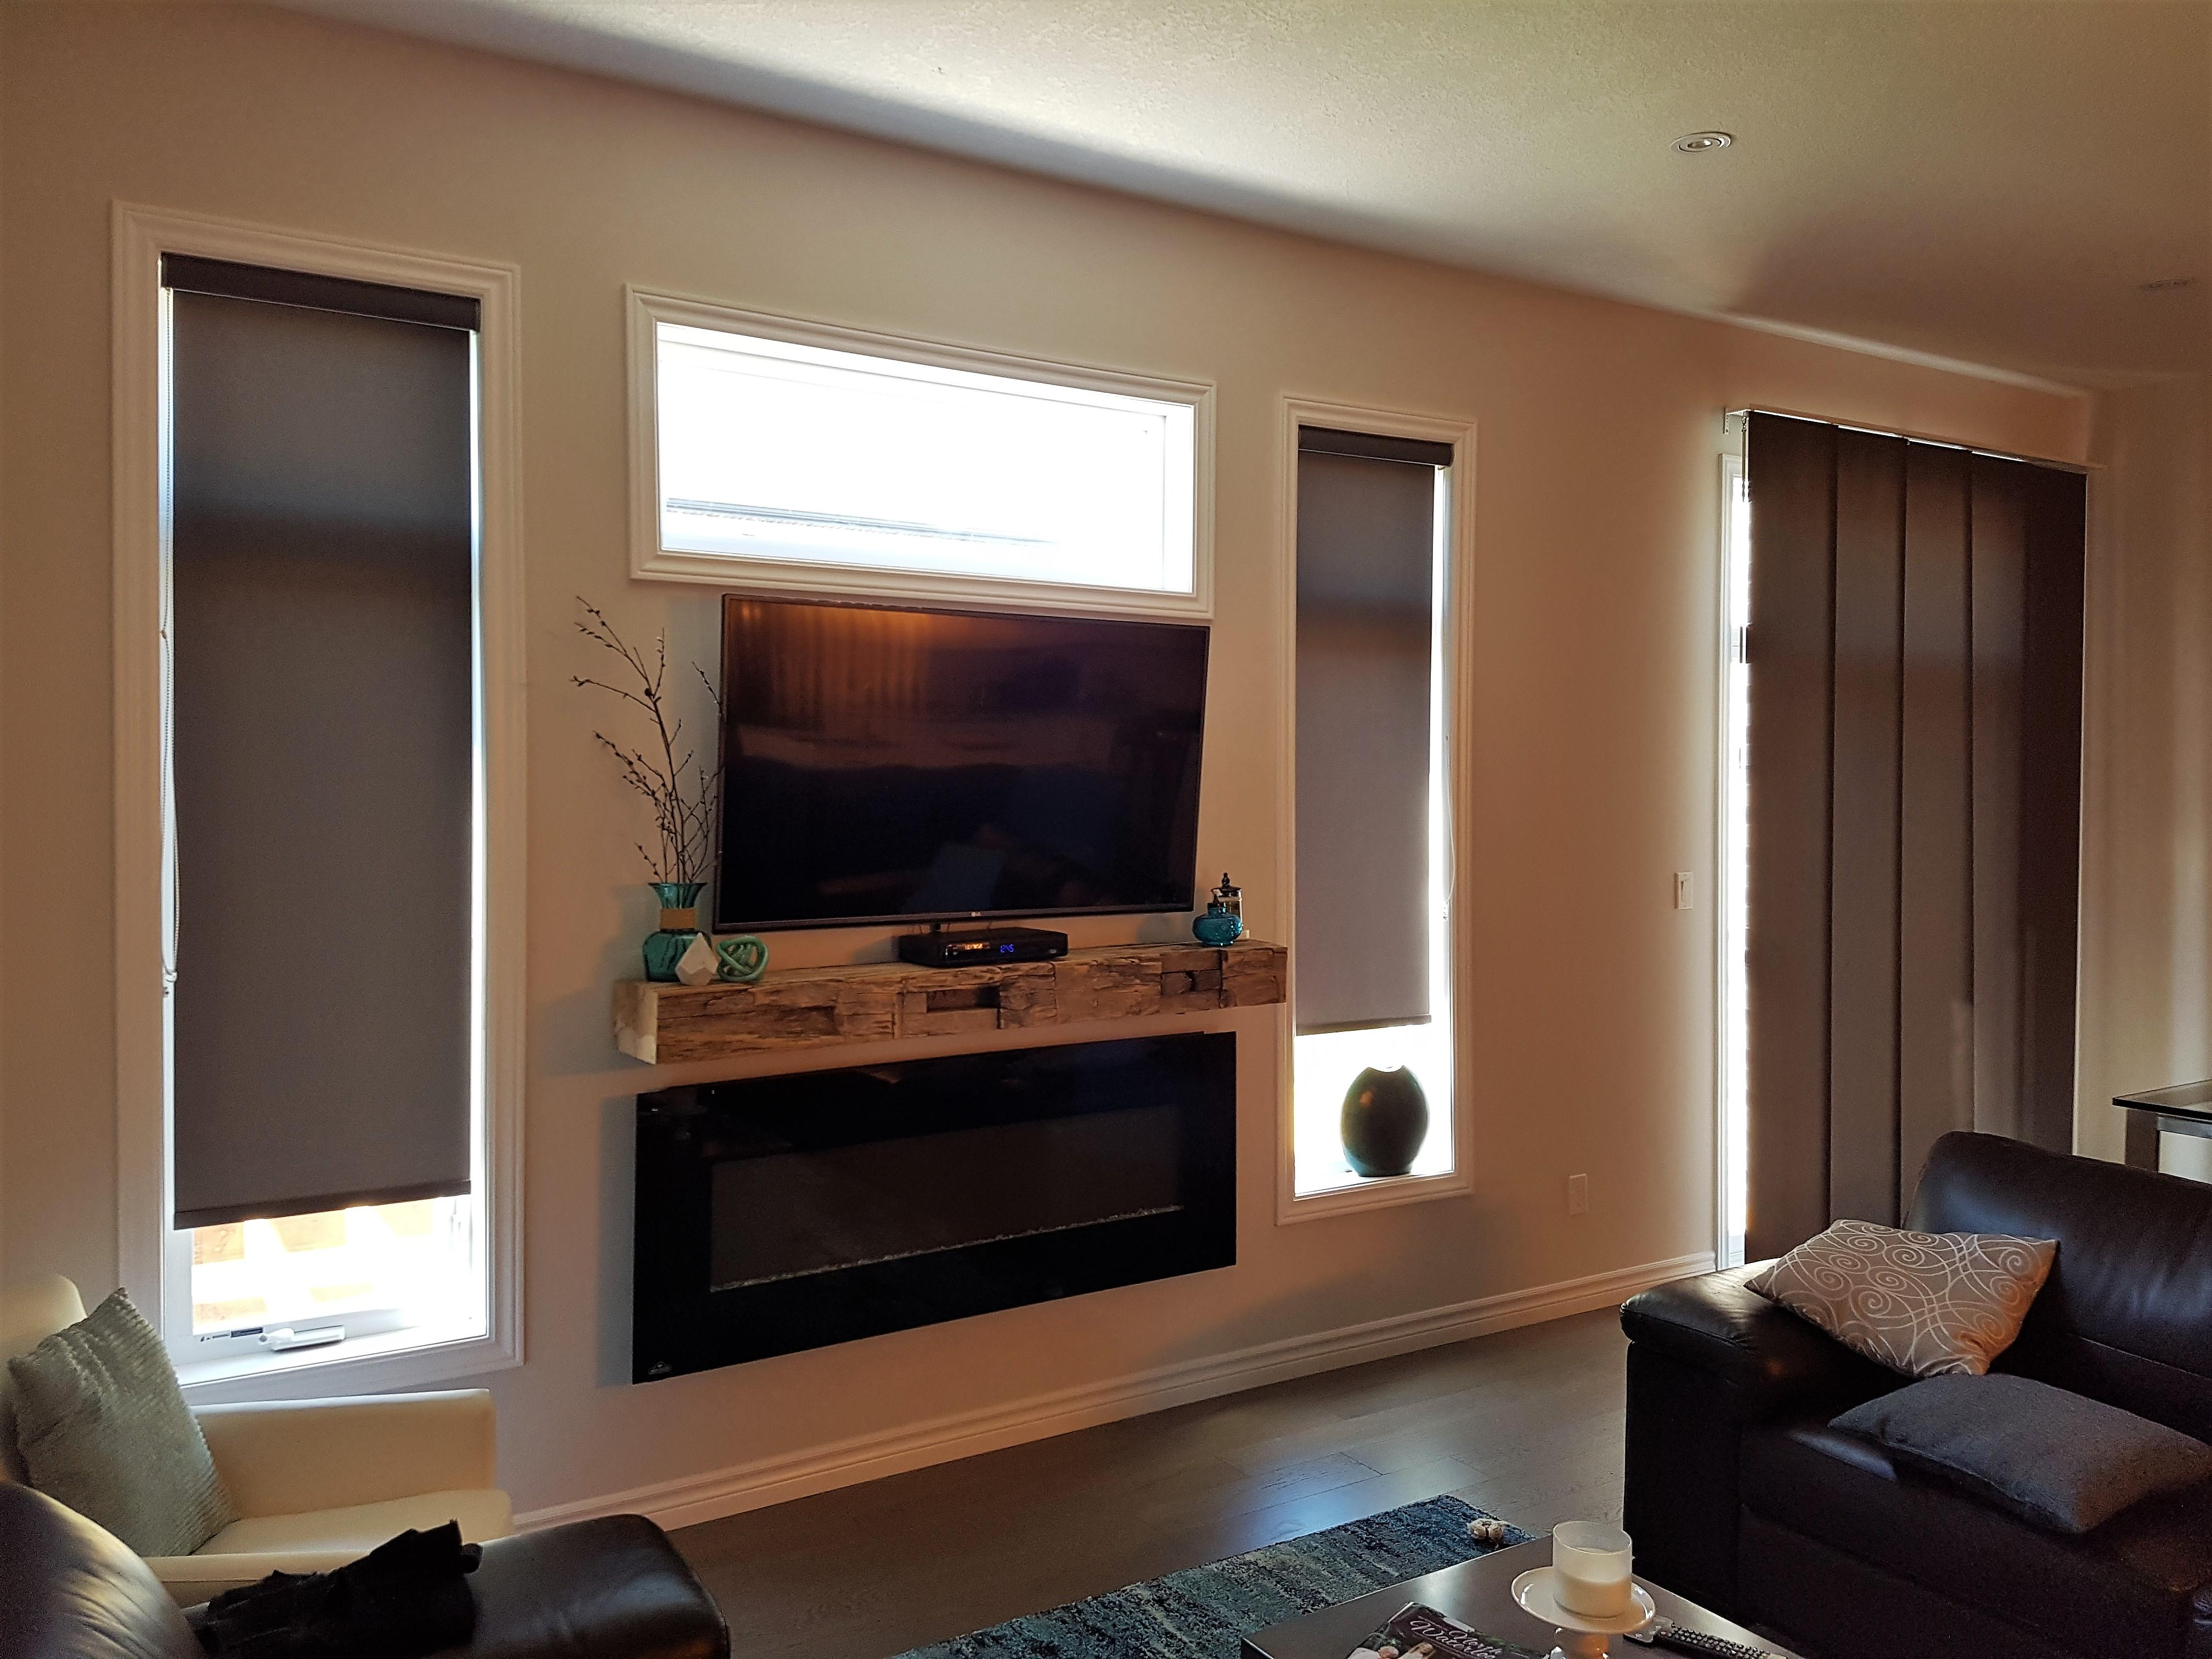 Budget Blinds à Waterloo: One of the reasons that panel tracks are a great covering option for patio doors is that we can coordinate them to be done in the same fabric as roller shades done in the same fabric.